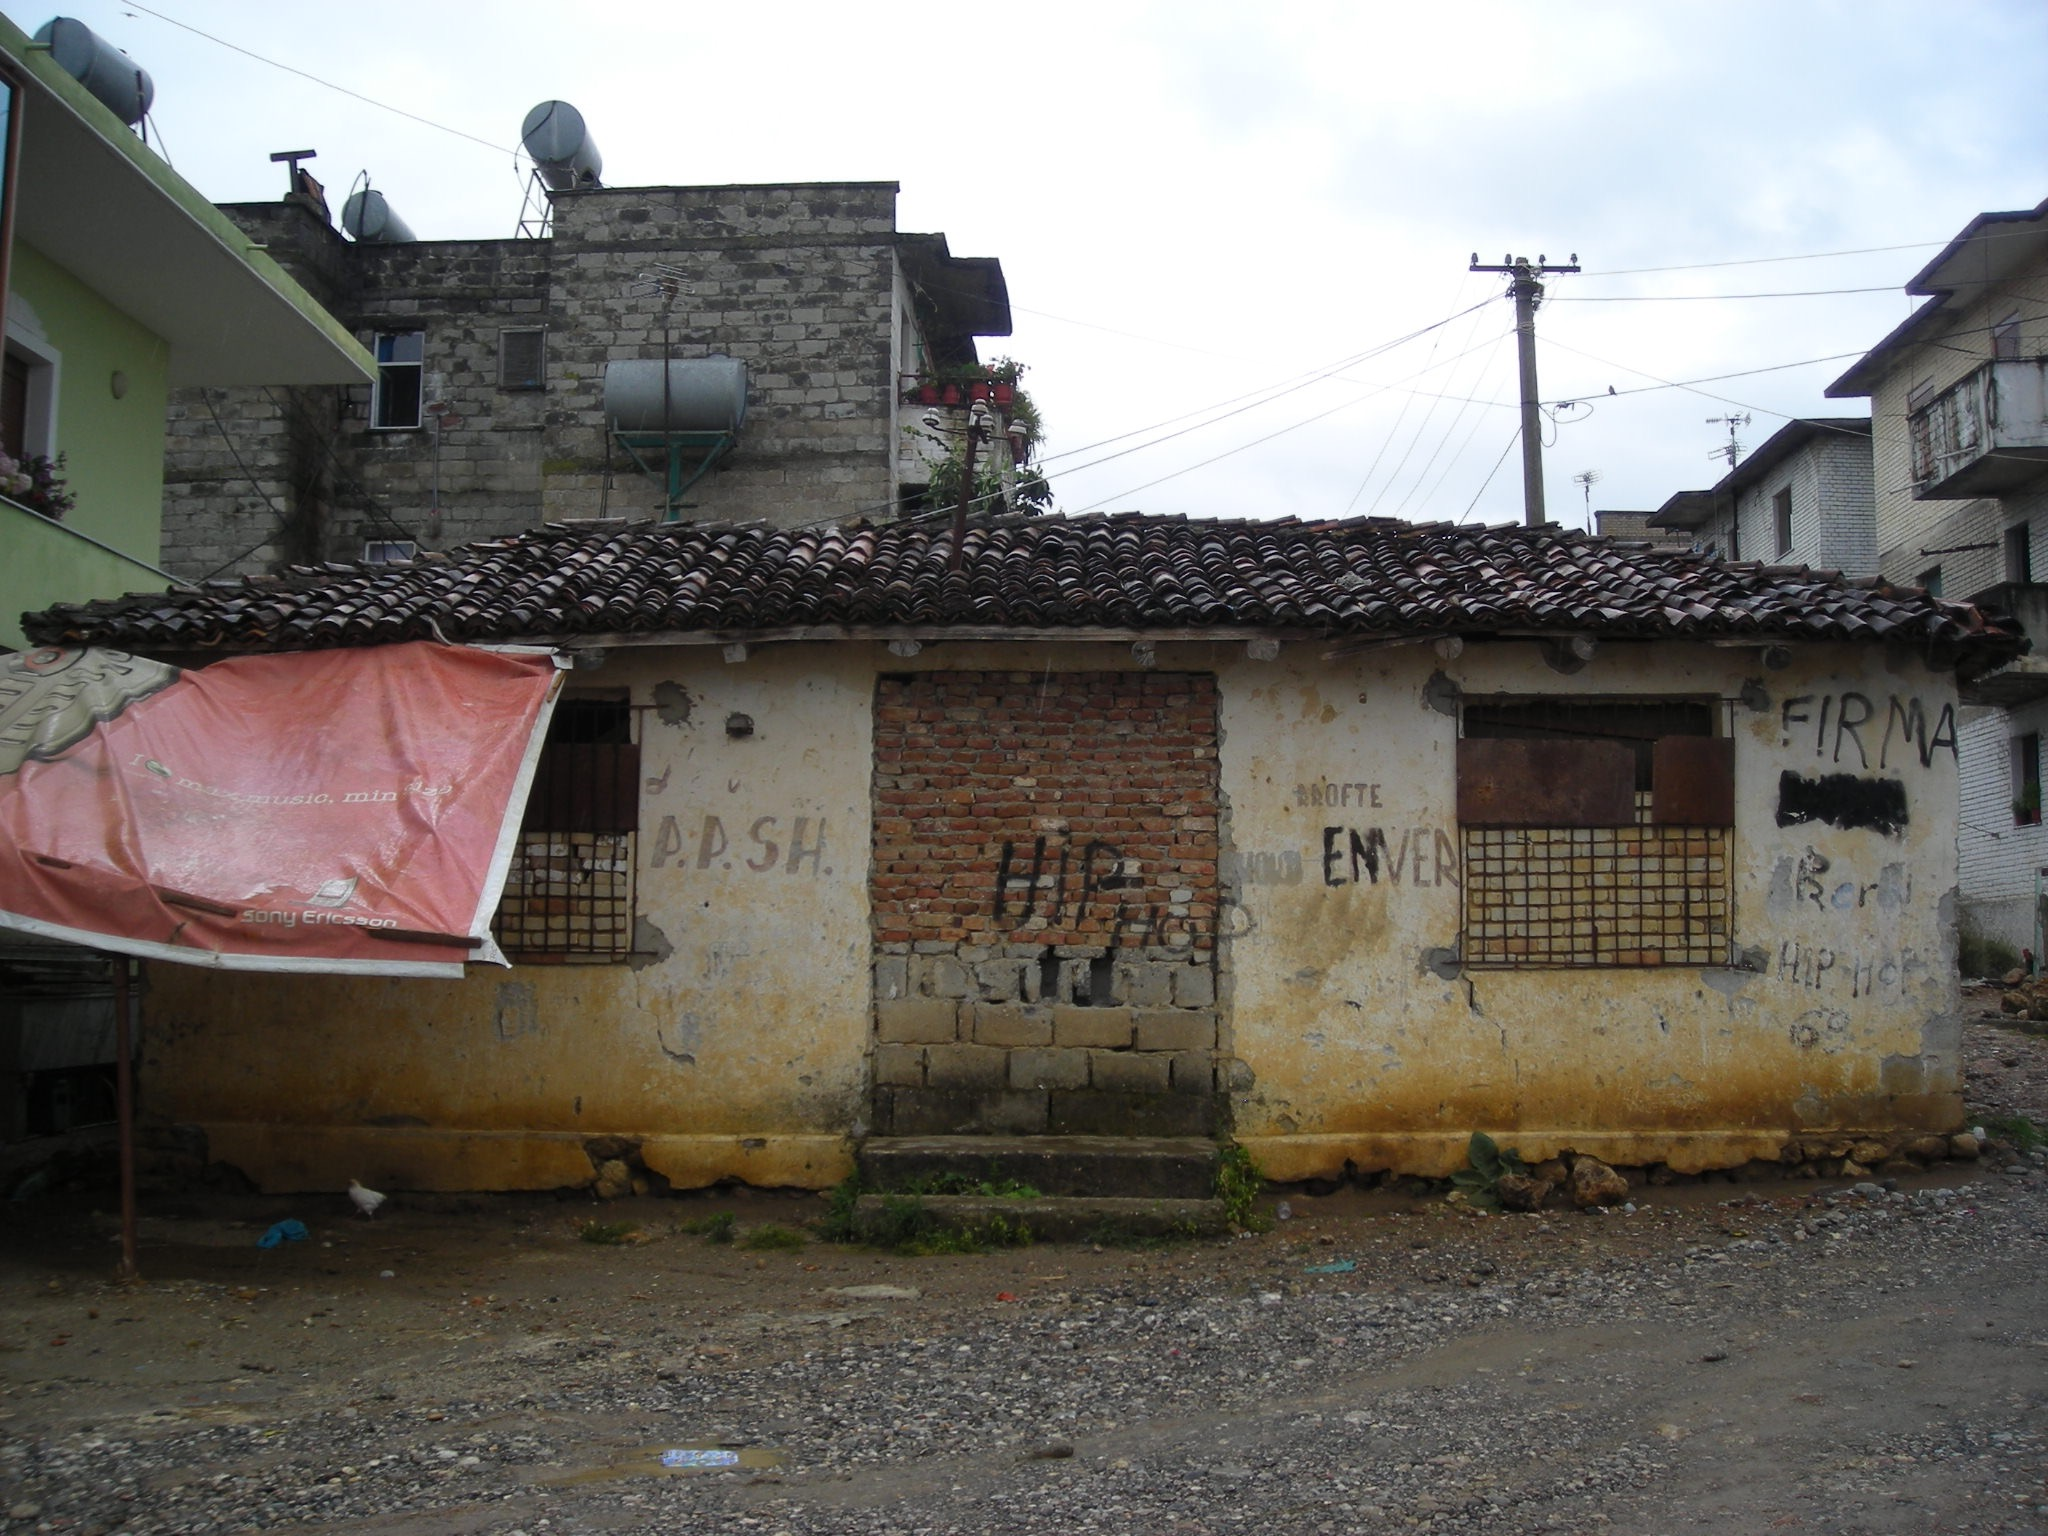 Abandoned building with graffitti on exterior